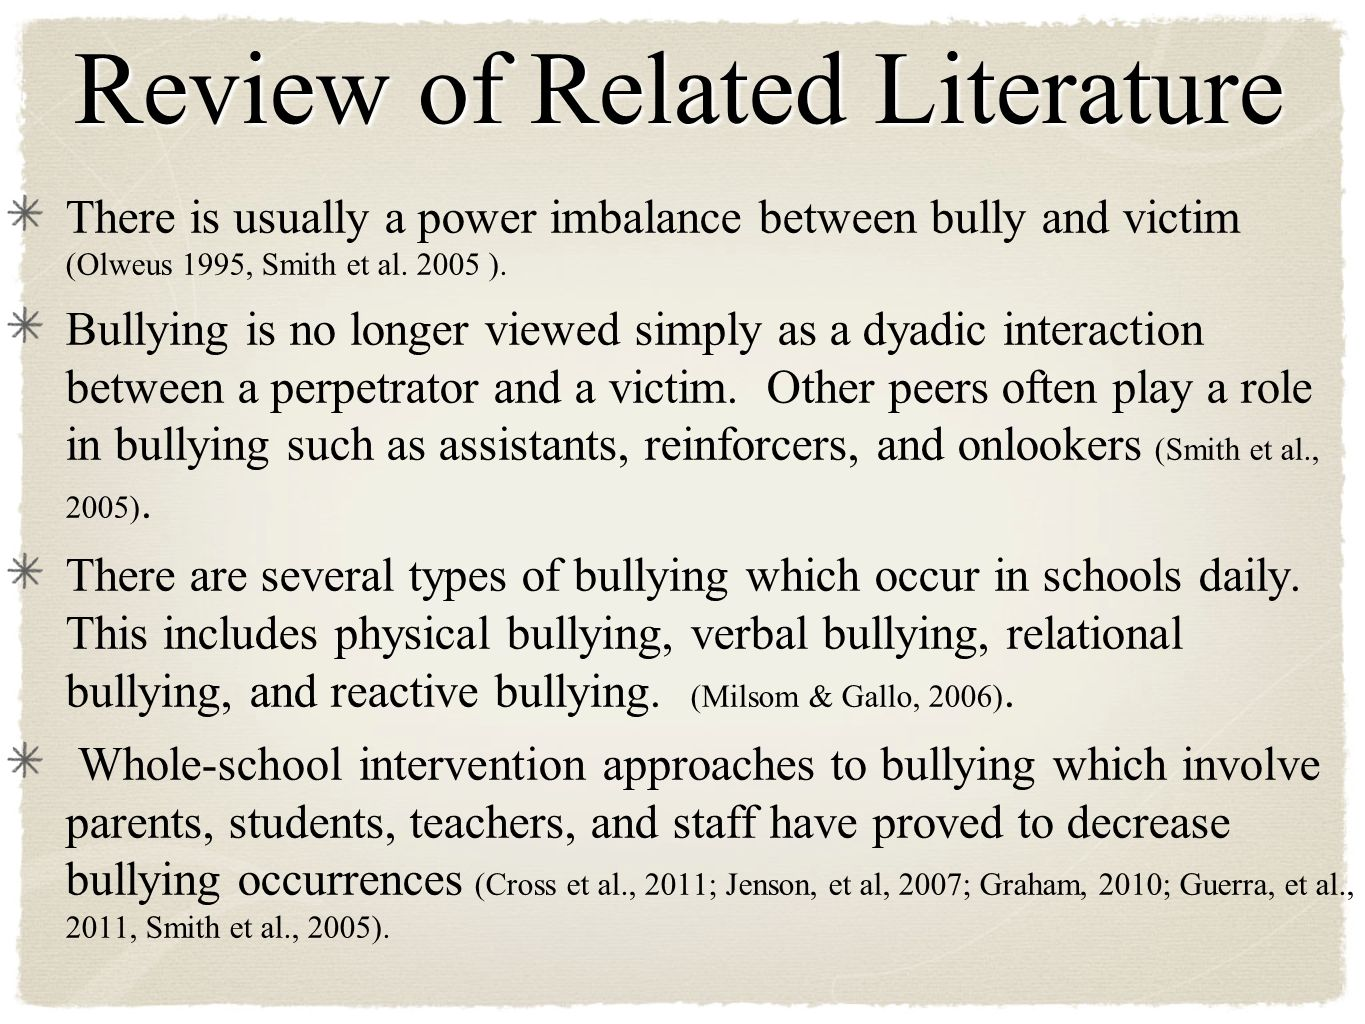 literature review bully victims Workplace bullying: an integrative literature review james e bartlett repeated and enduring act which involves an imbalance of power between the victim.